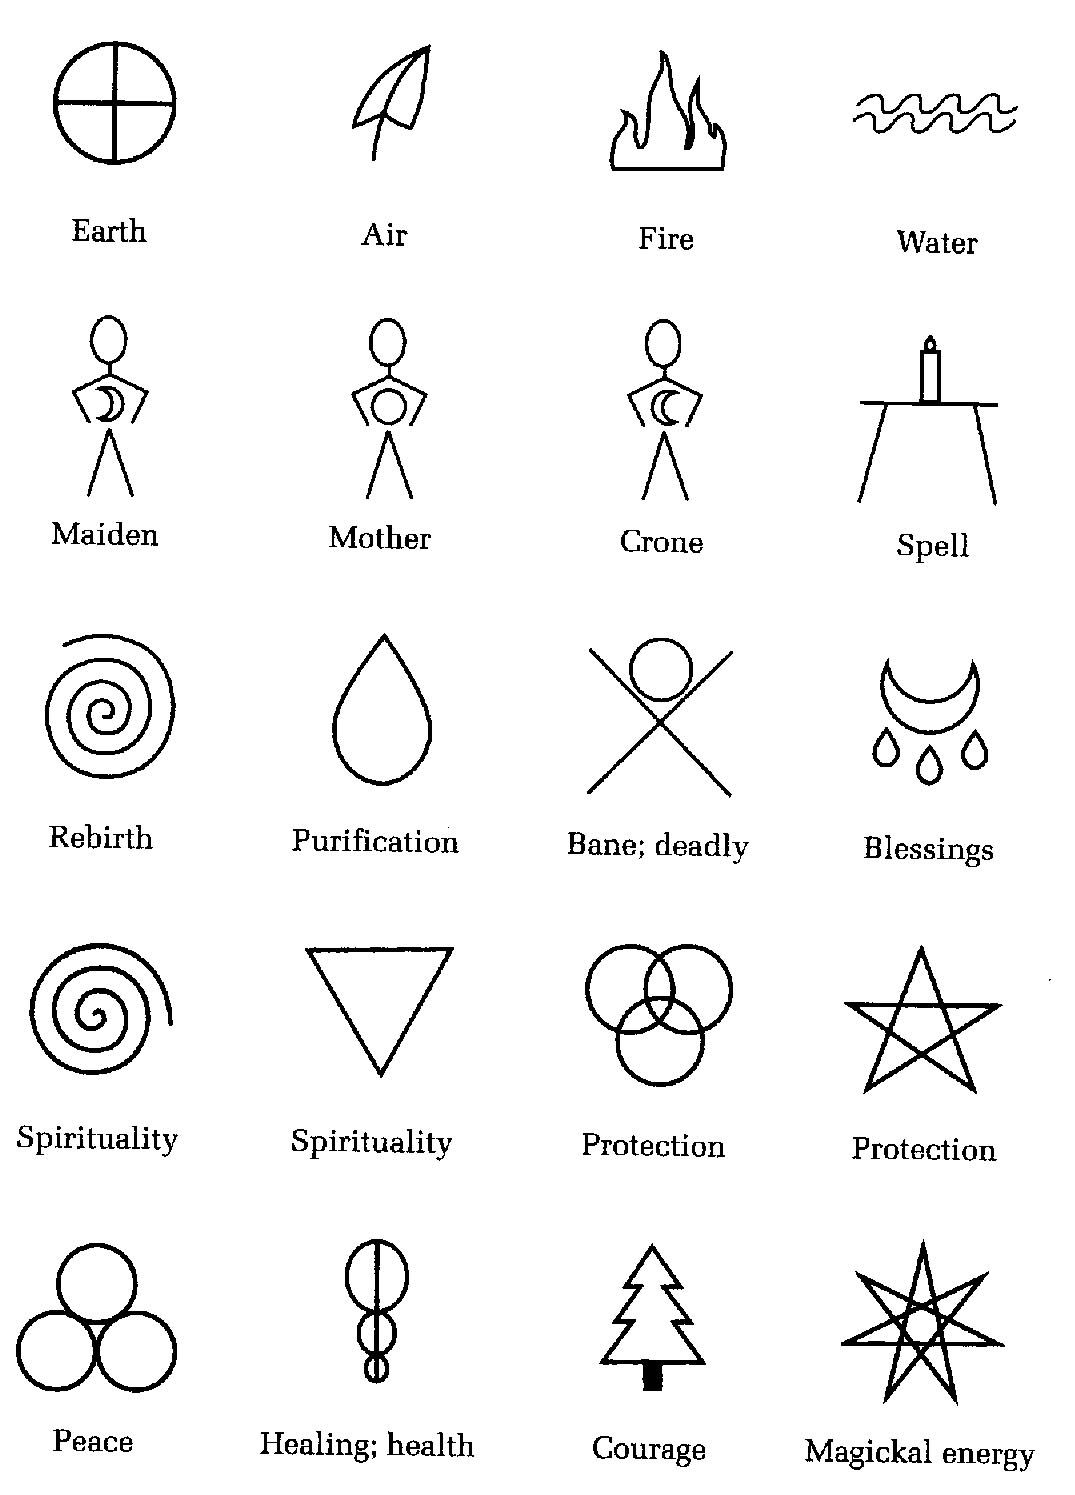 Get The Blessing Symbol And Color Each Drop The Birthstone